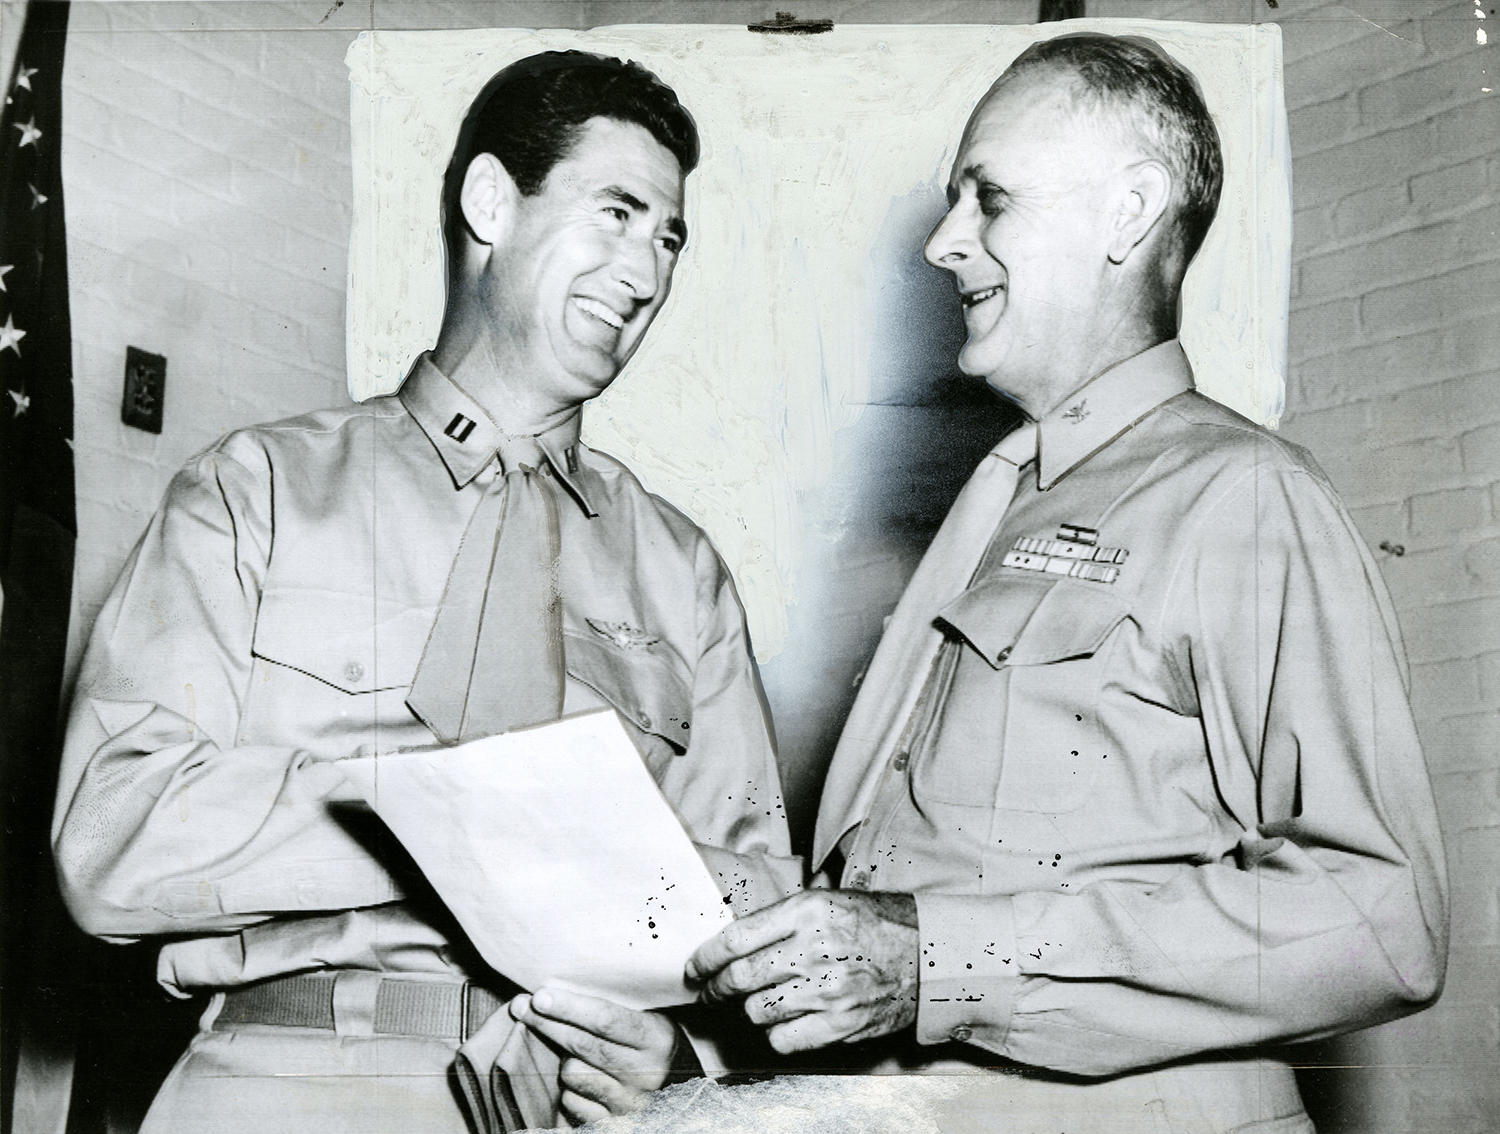 """Ted Williams (left) pictured with Col. K.C. Chapel in Washington D.C, as he is released from active duty in 1953. <a href=""""http://collection.baseballhall.org/islandora/object/islandora%3A501750"""">PASTIME</a> (National Baseball Hall of Fame)"""